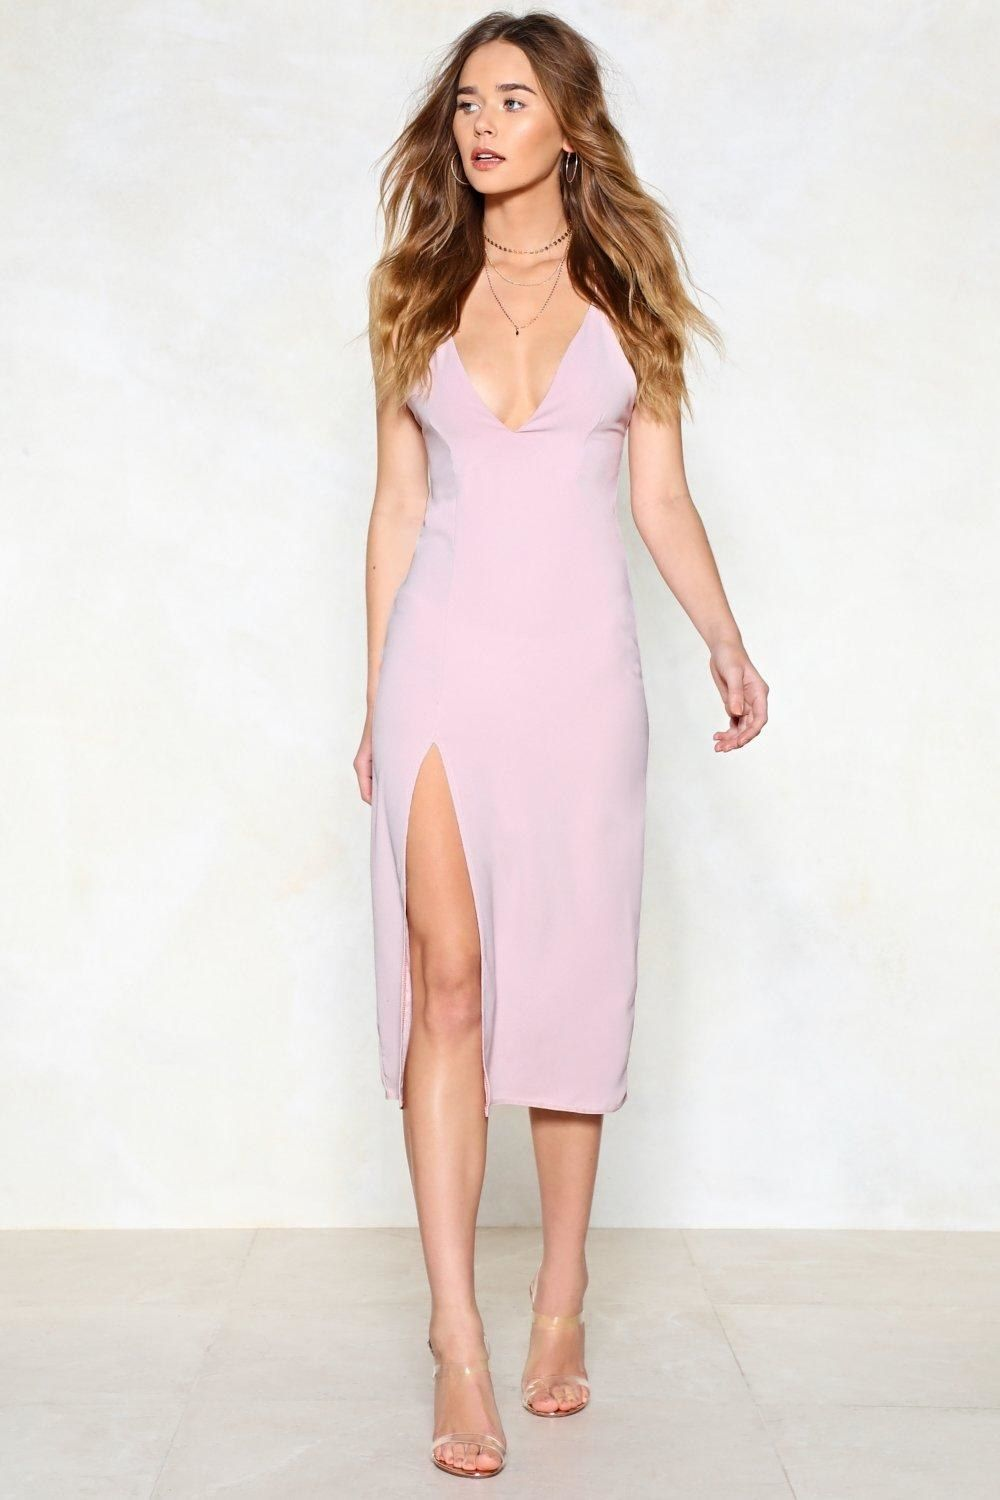 34 Gorgeous And Cheap Dresses To Wear To A Summer Wedding Tight Fitted Dresses Dresses Cheap Dresses